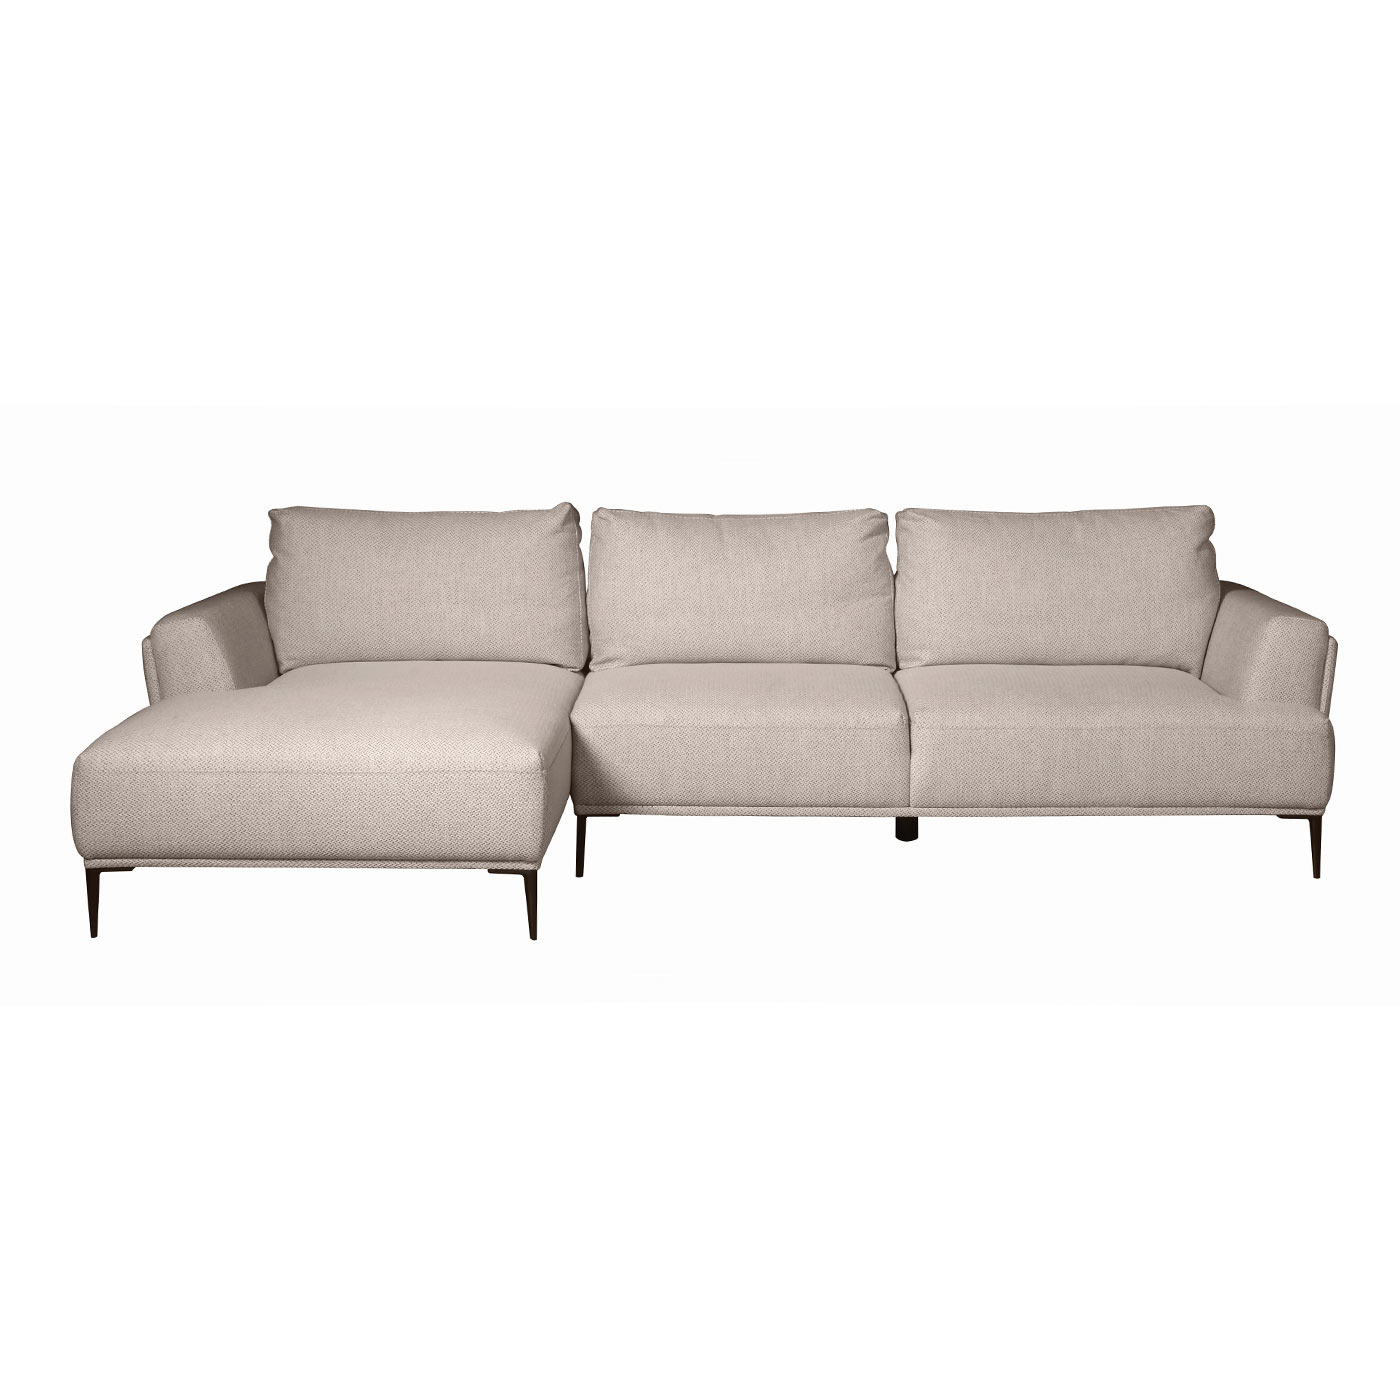 Belmont_3_Seater_Sofa_Left_Chaise_In_Light_Beige_Front_View_1